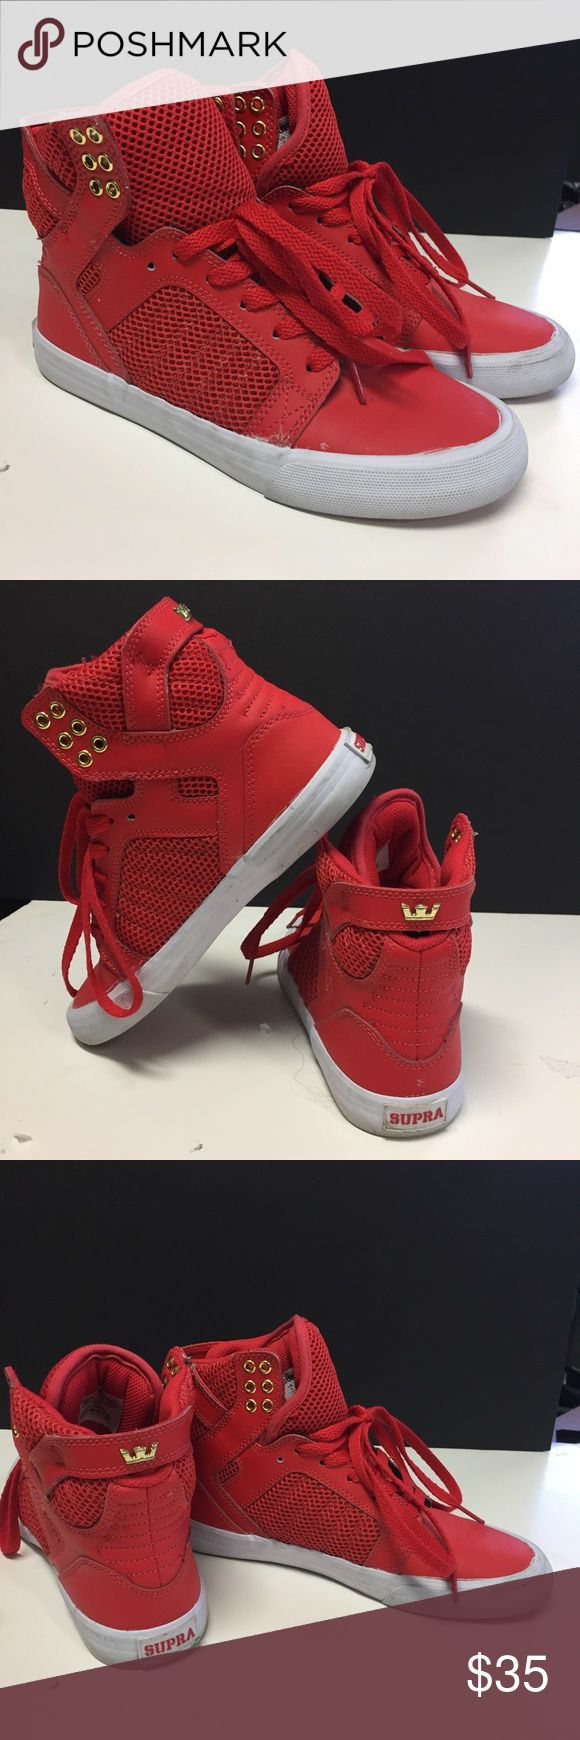 Supra Red High Top Sneakers Size 7 Gently used red high Top Women's Sneakers. Size 7. Make me an offer. Supra Shoes Sneakers